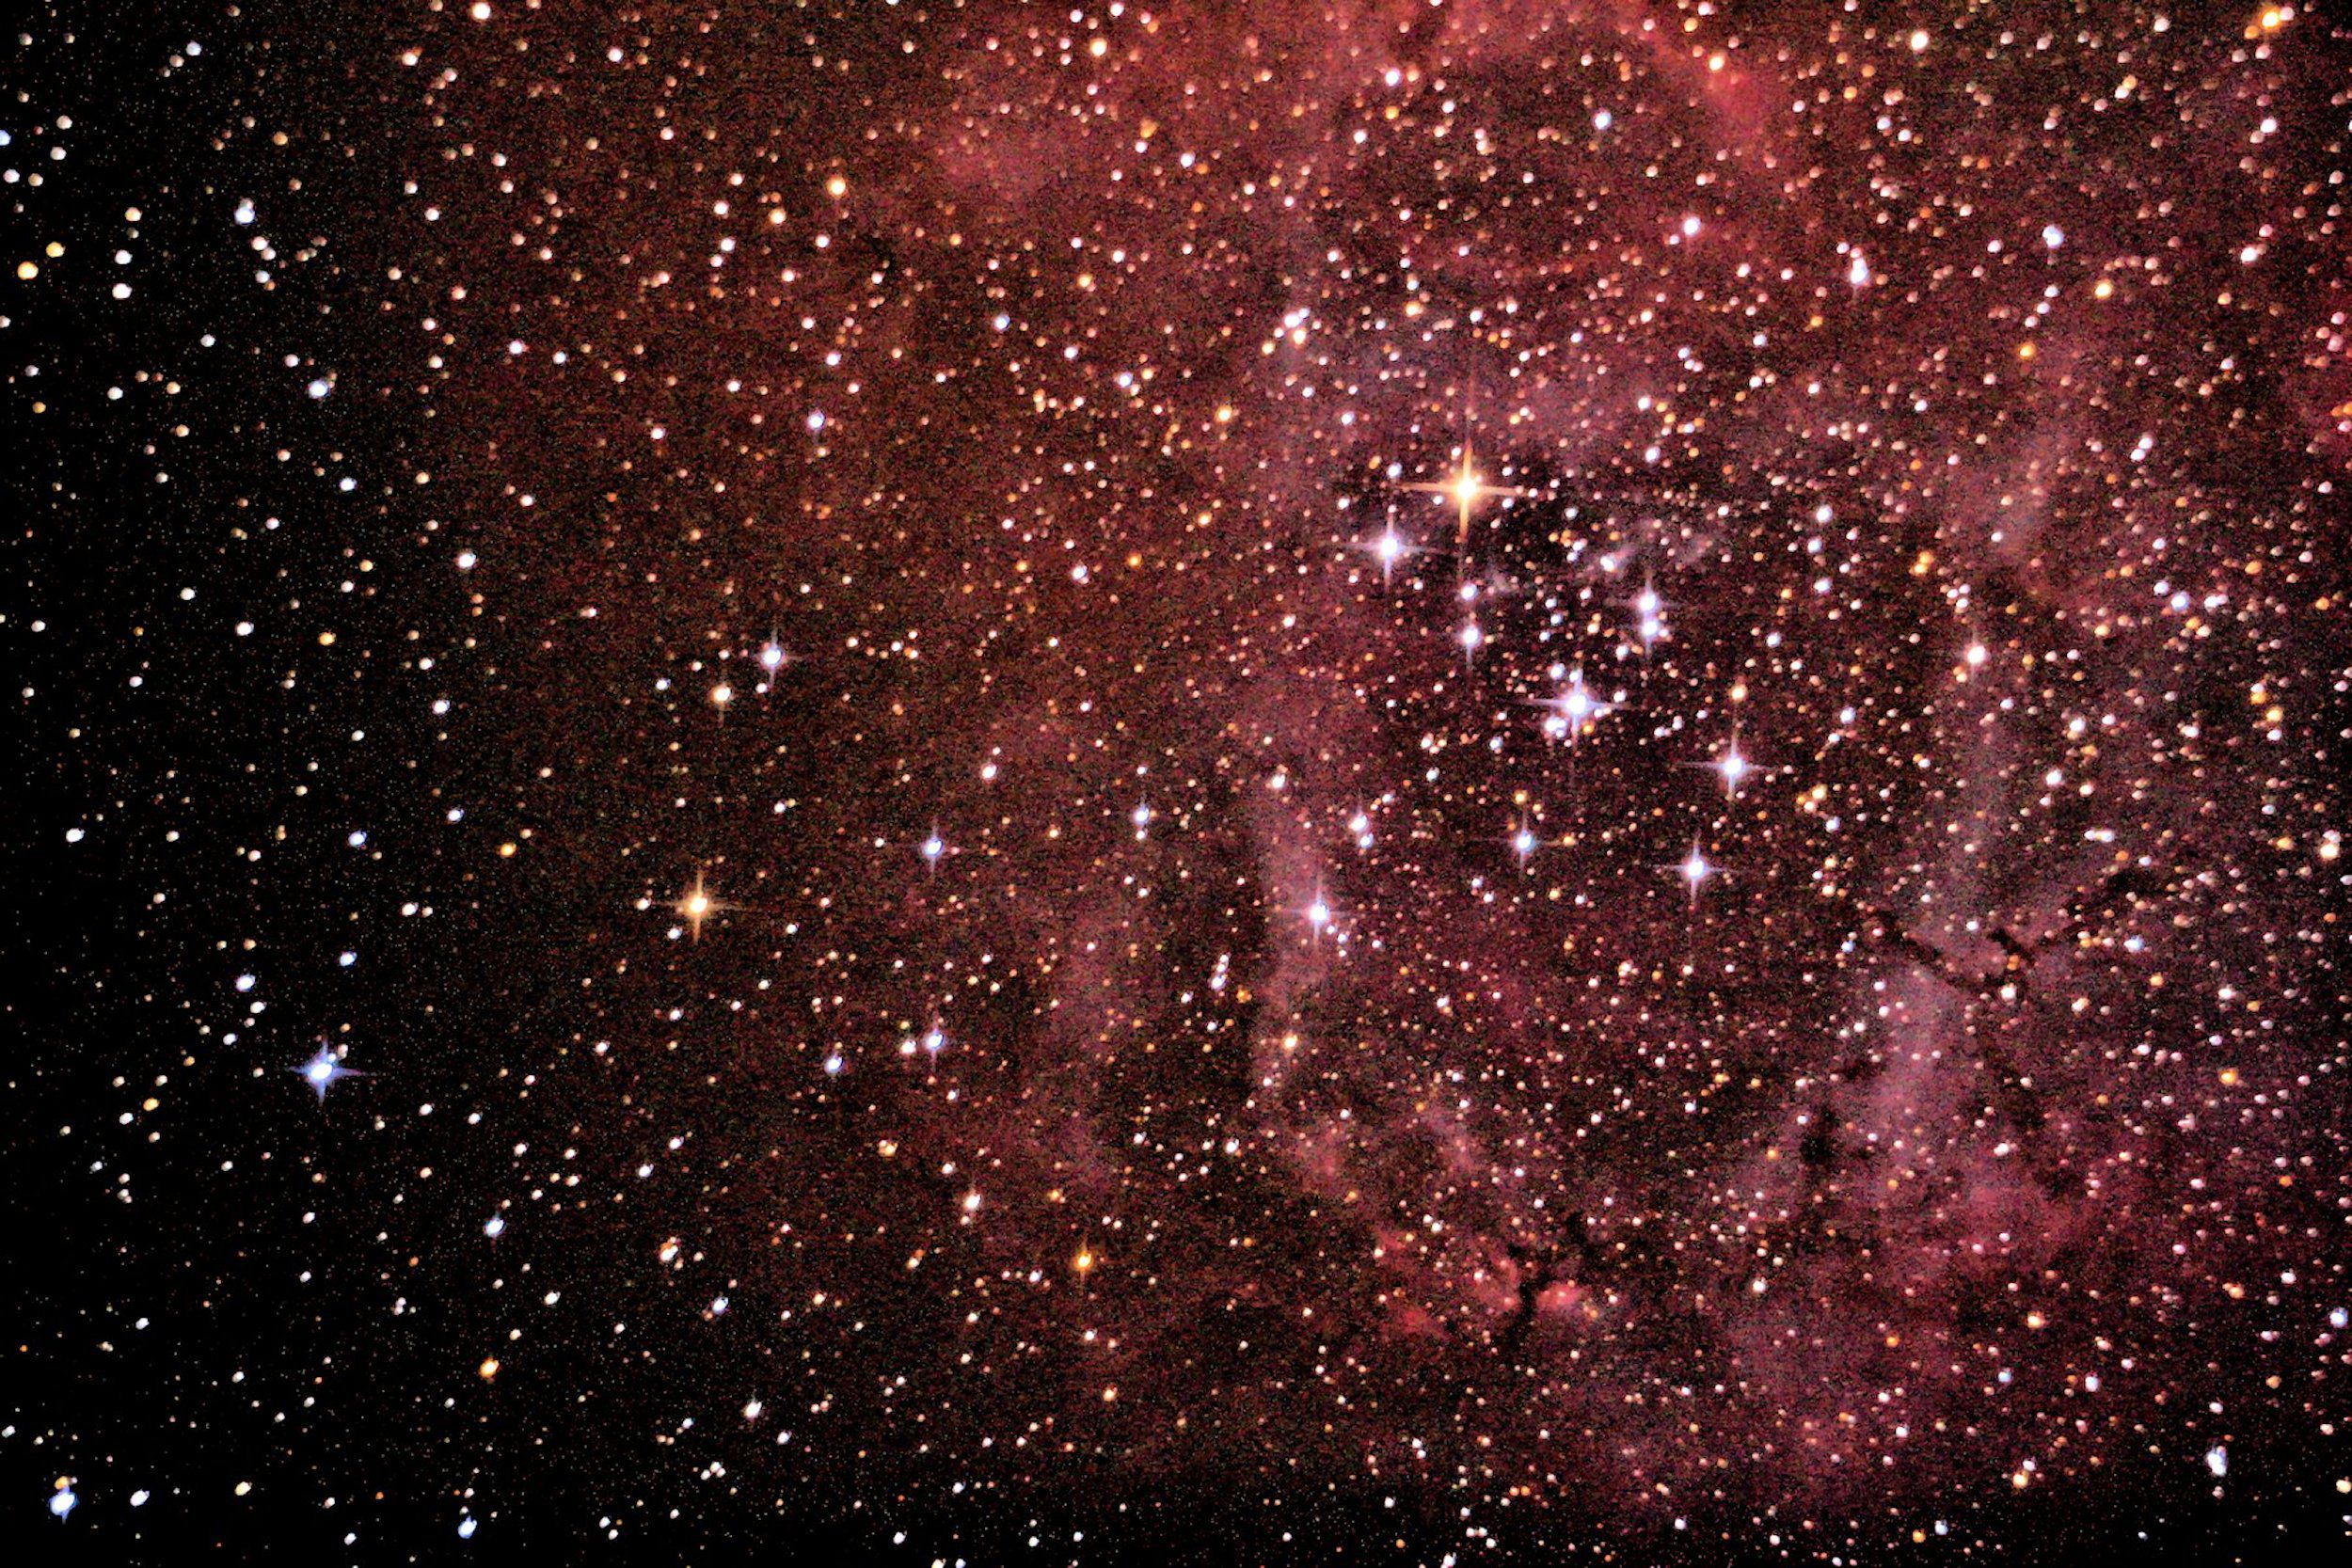 Rosette Nebula 11-28-13 at US Store